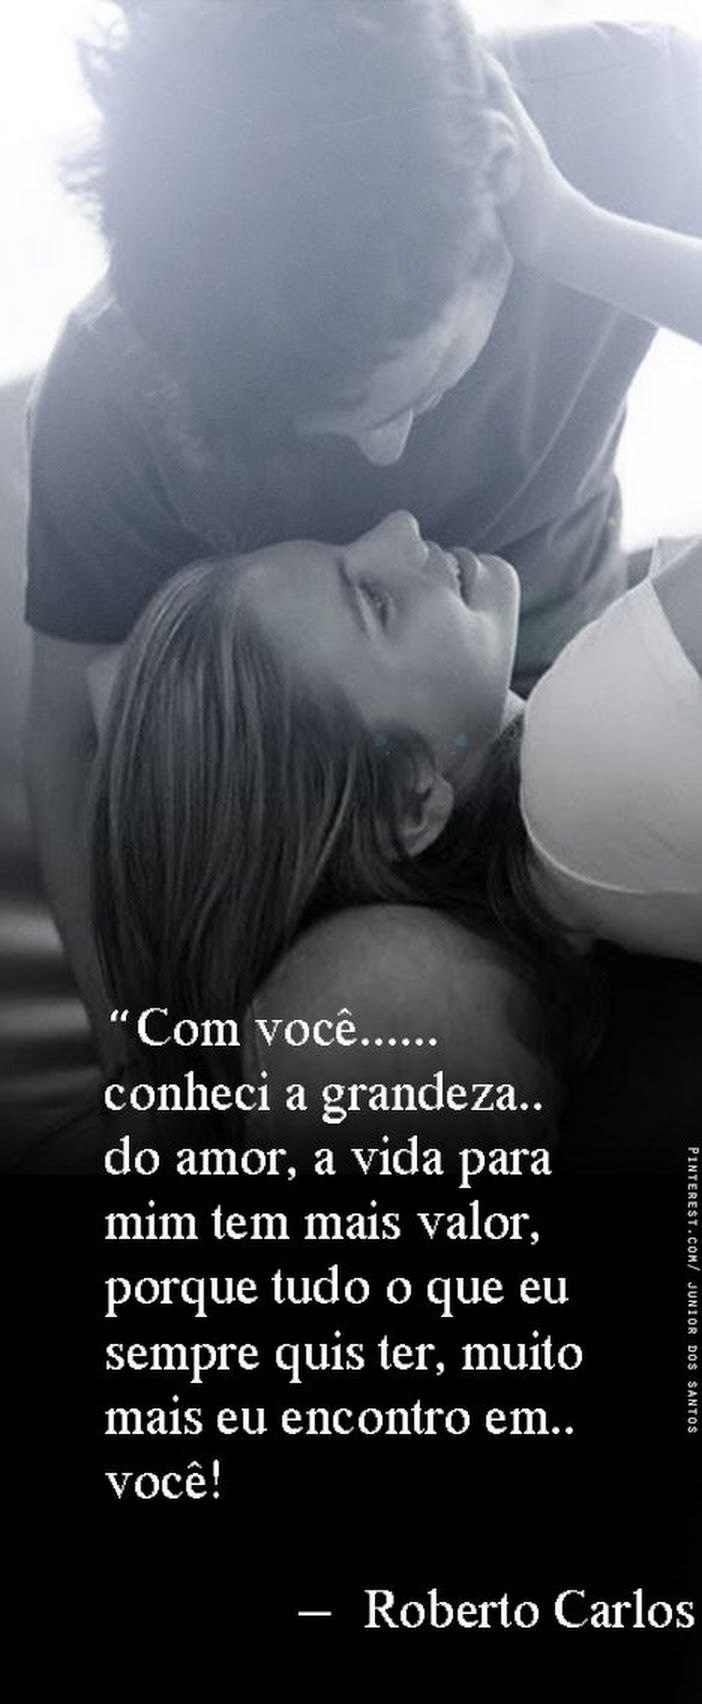 Pin By Icaro Amaral On Amor Pinterest Relationships Frases And Amor